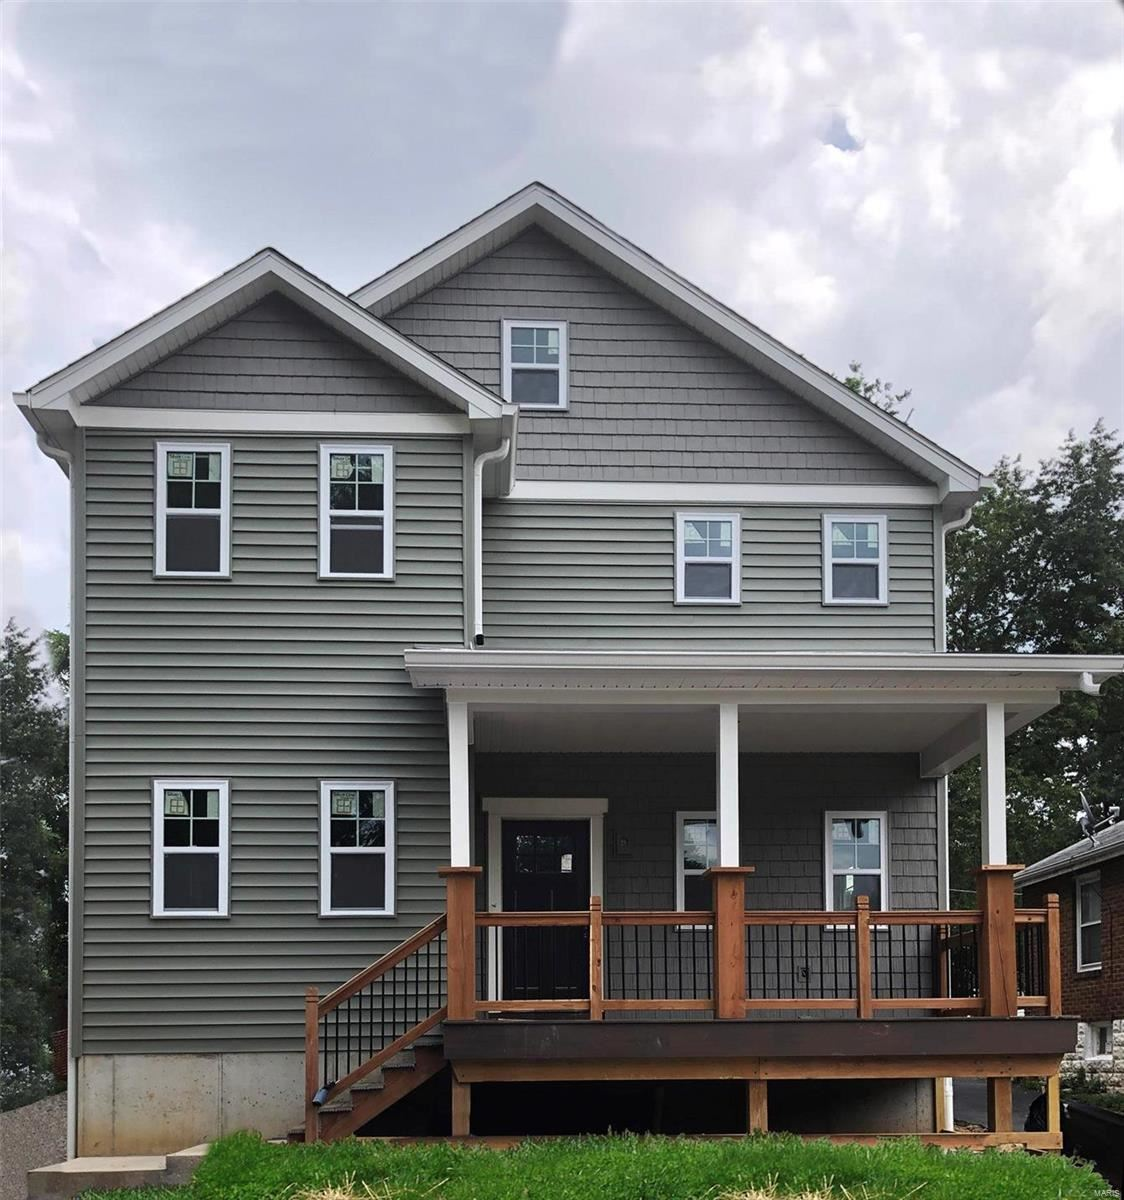 2308 Hilton Ave, Brentwood, MO 63144 - MLS#: 20057282